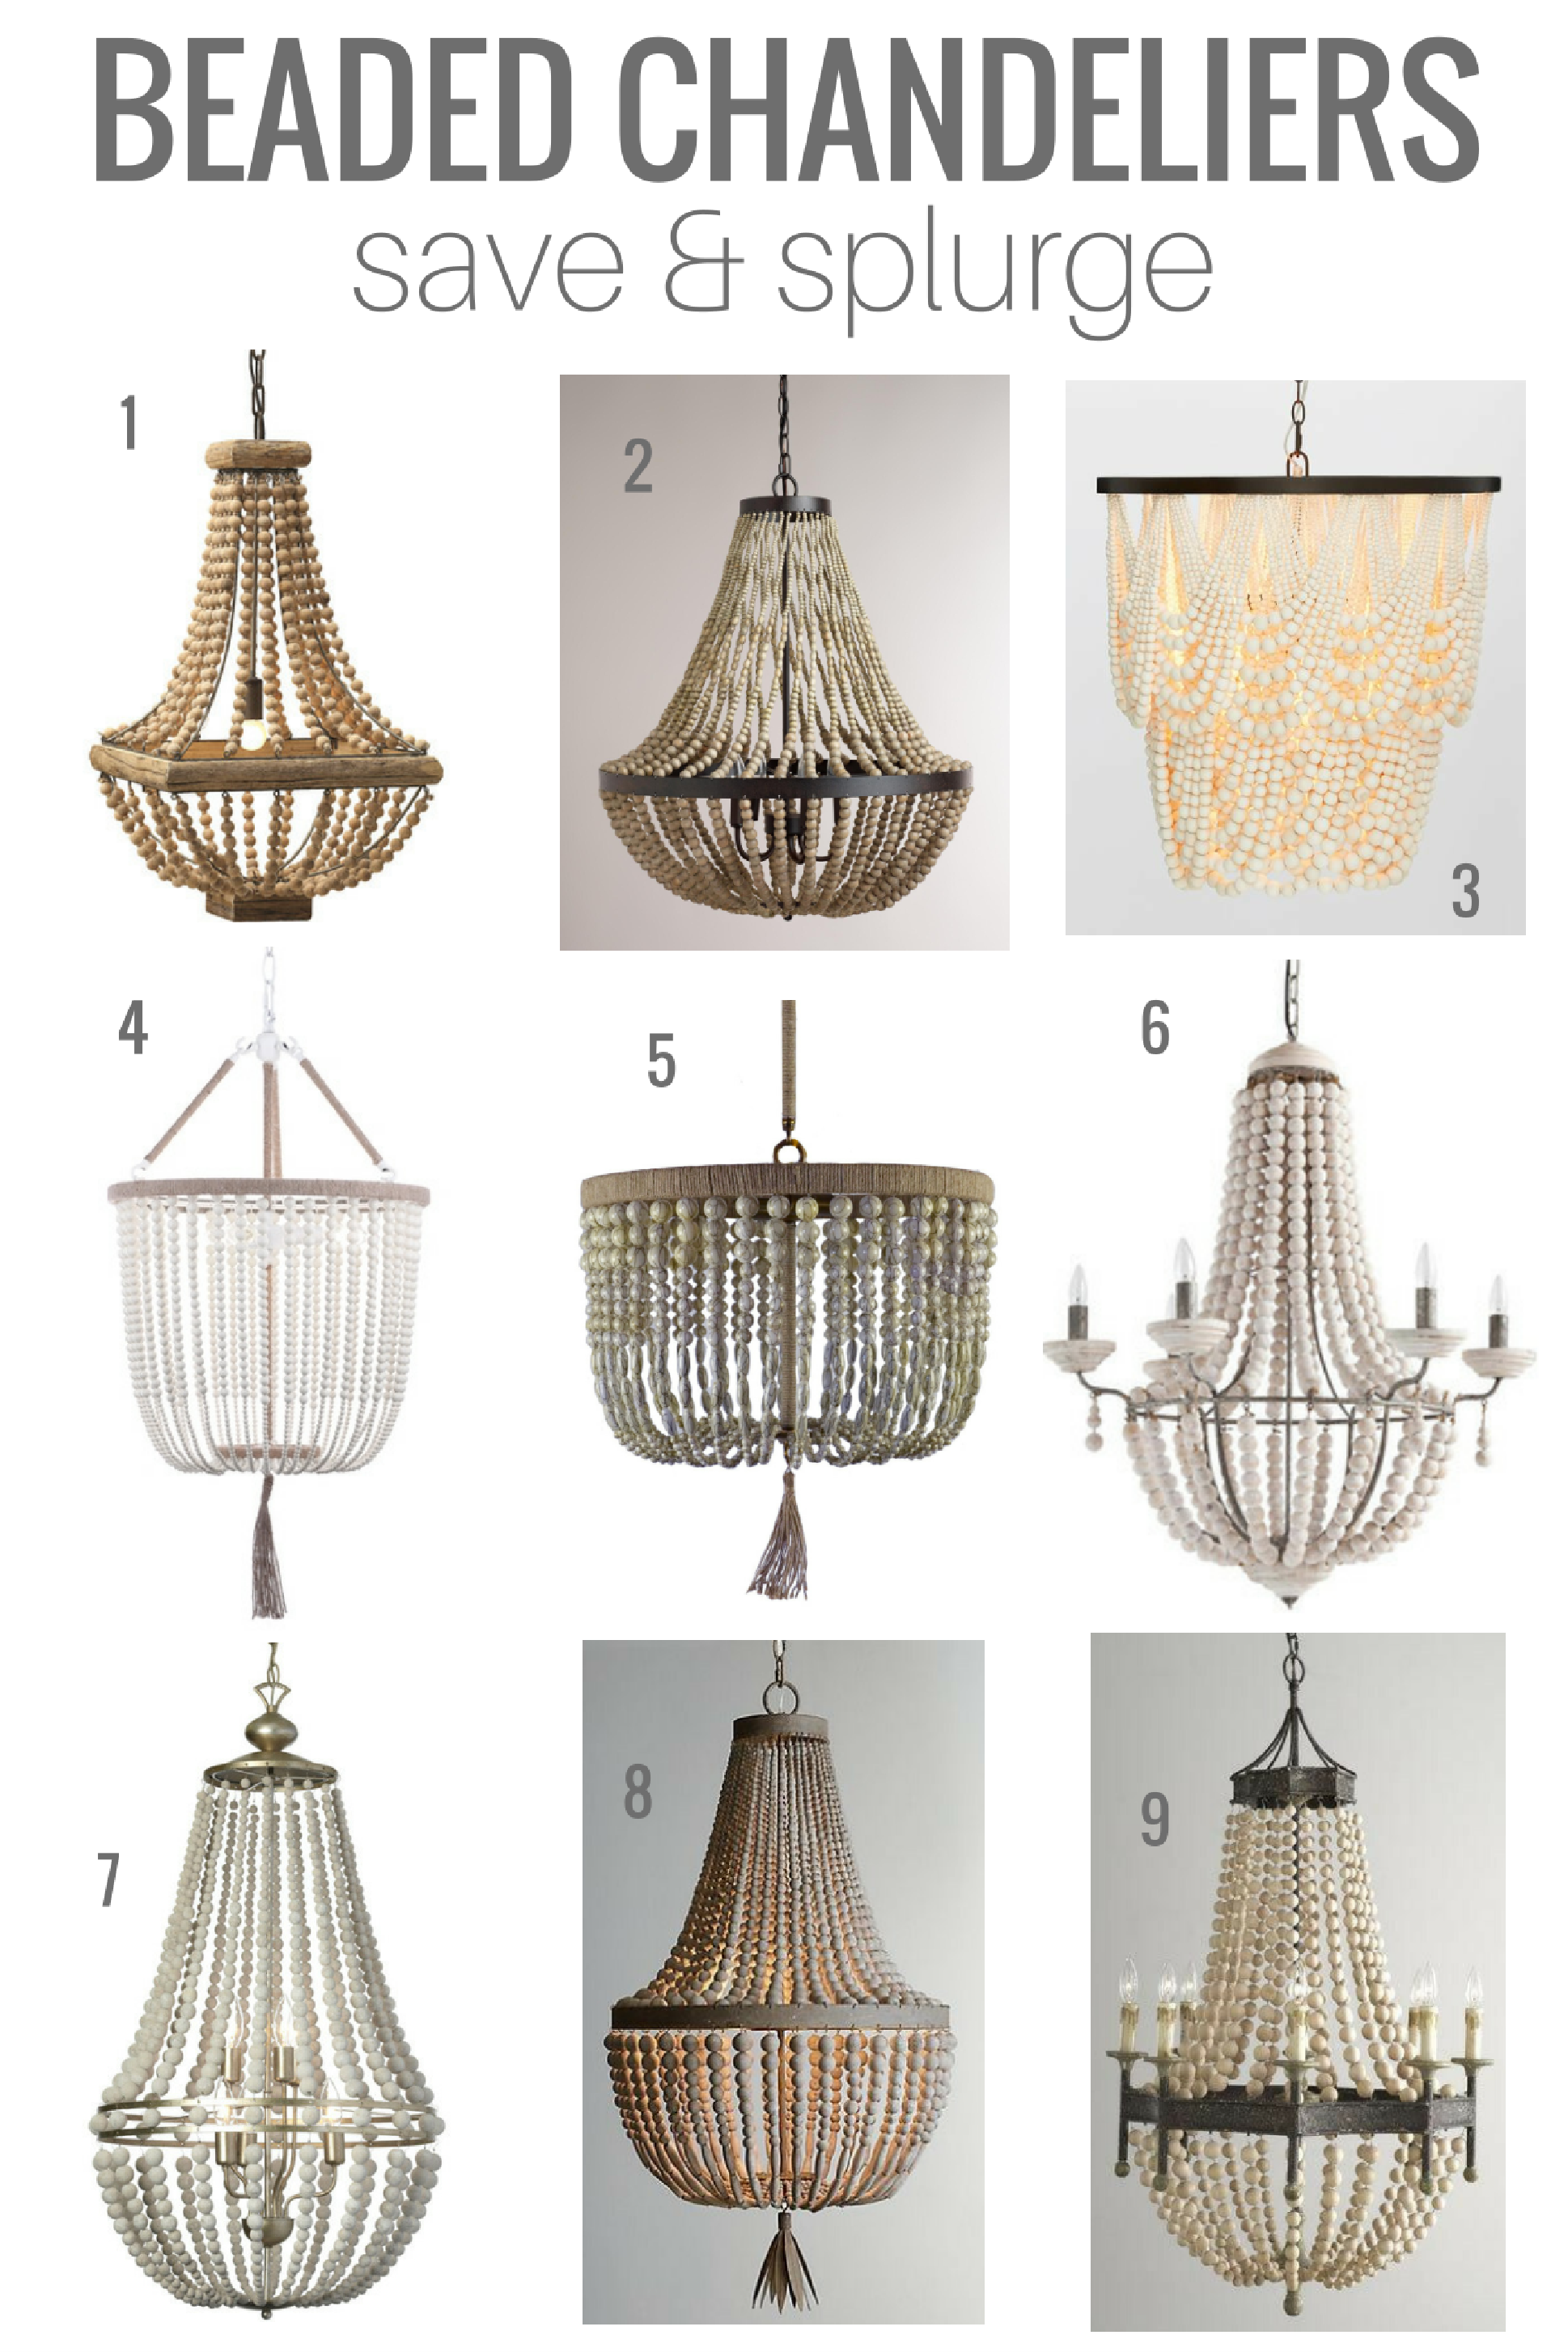 Beaded chandeliers invaluable lighting lessons pinterest have your eye on beaded chandeliers ive rounded up some of my favourite save and splurge options come check out which one i picked for our dining room aloadofball Images